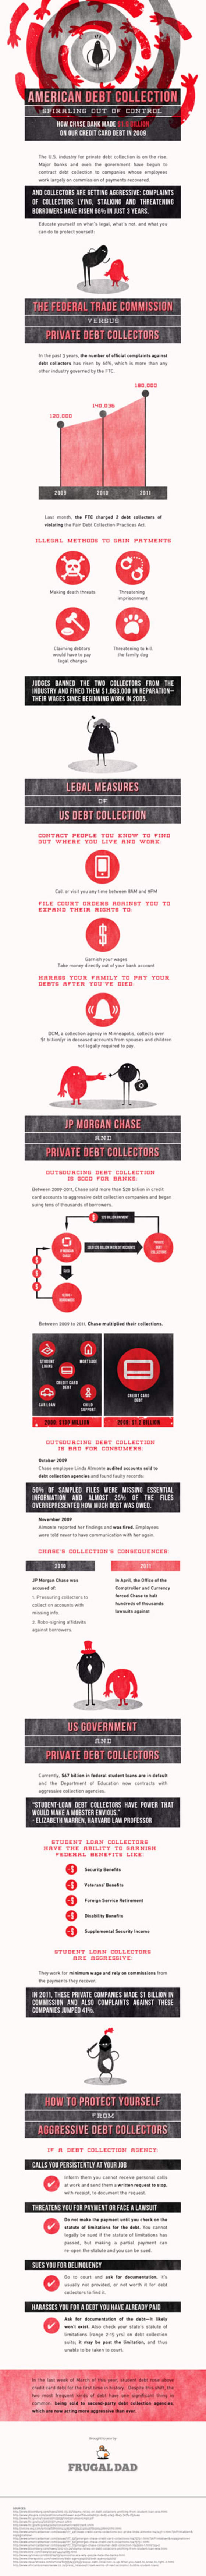 american debt collection infographic